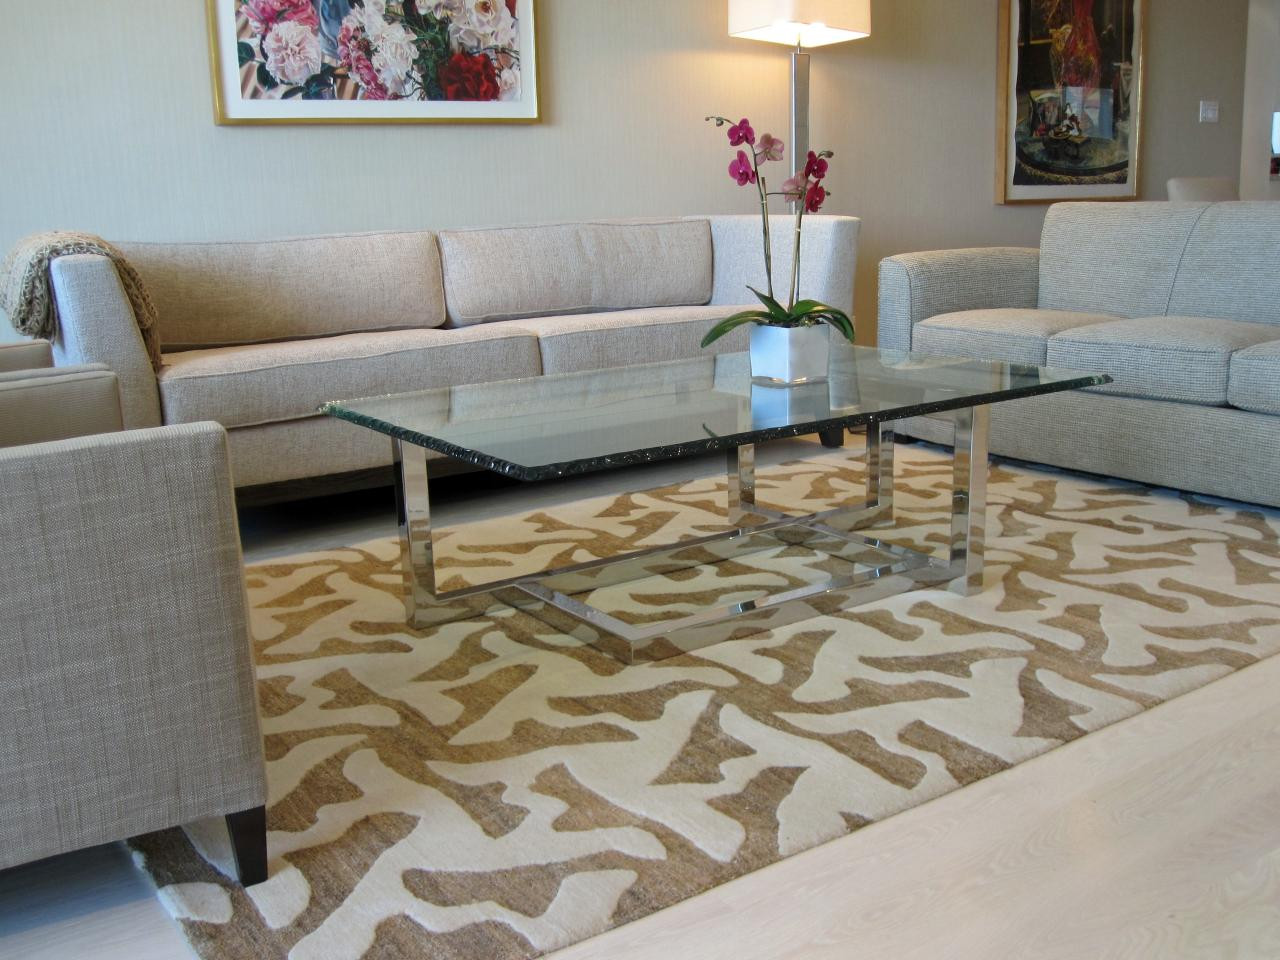 Best ideas about Living Room Carpet . Save or Pin Ideal Tips to Choose Living Room Carpet — Emilie Carpet Now.